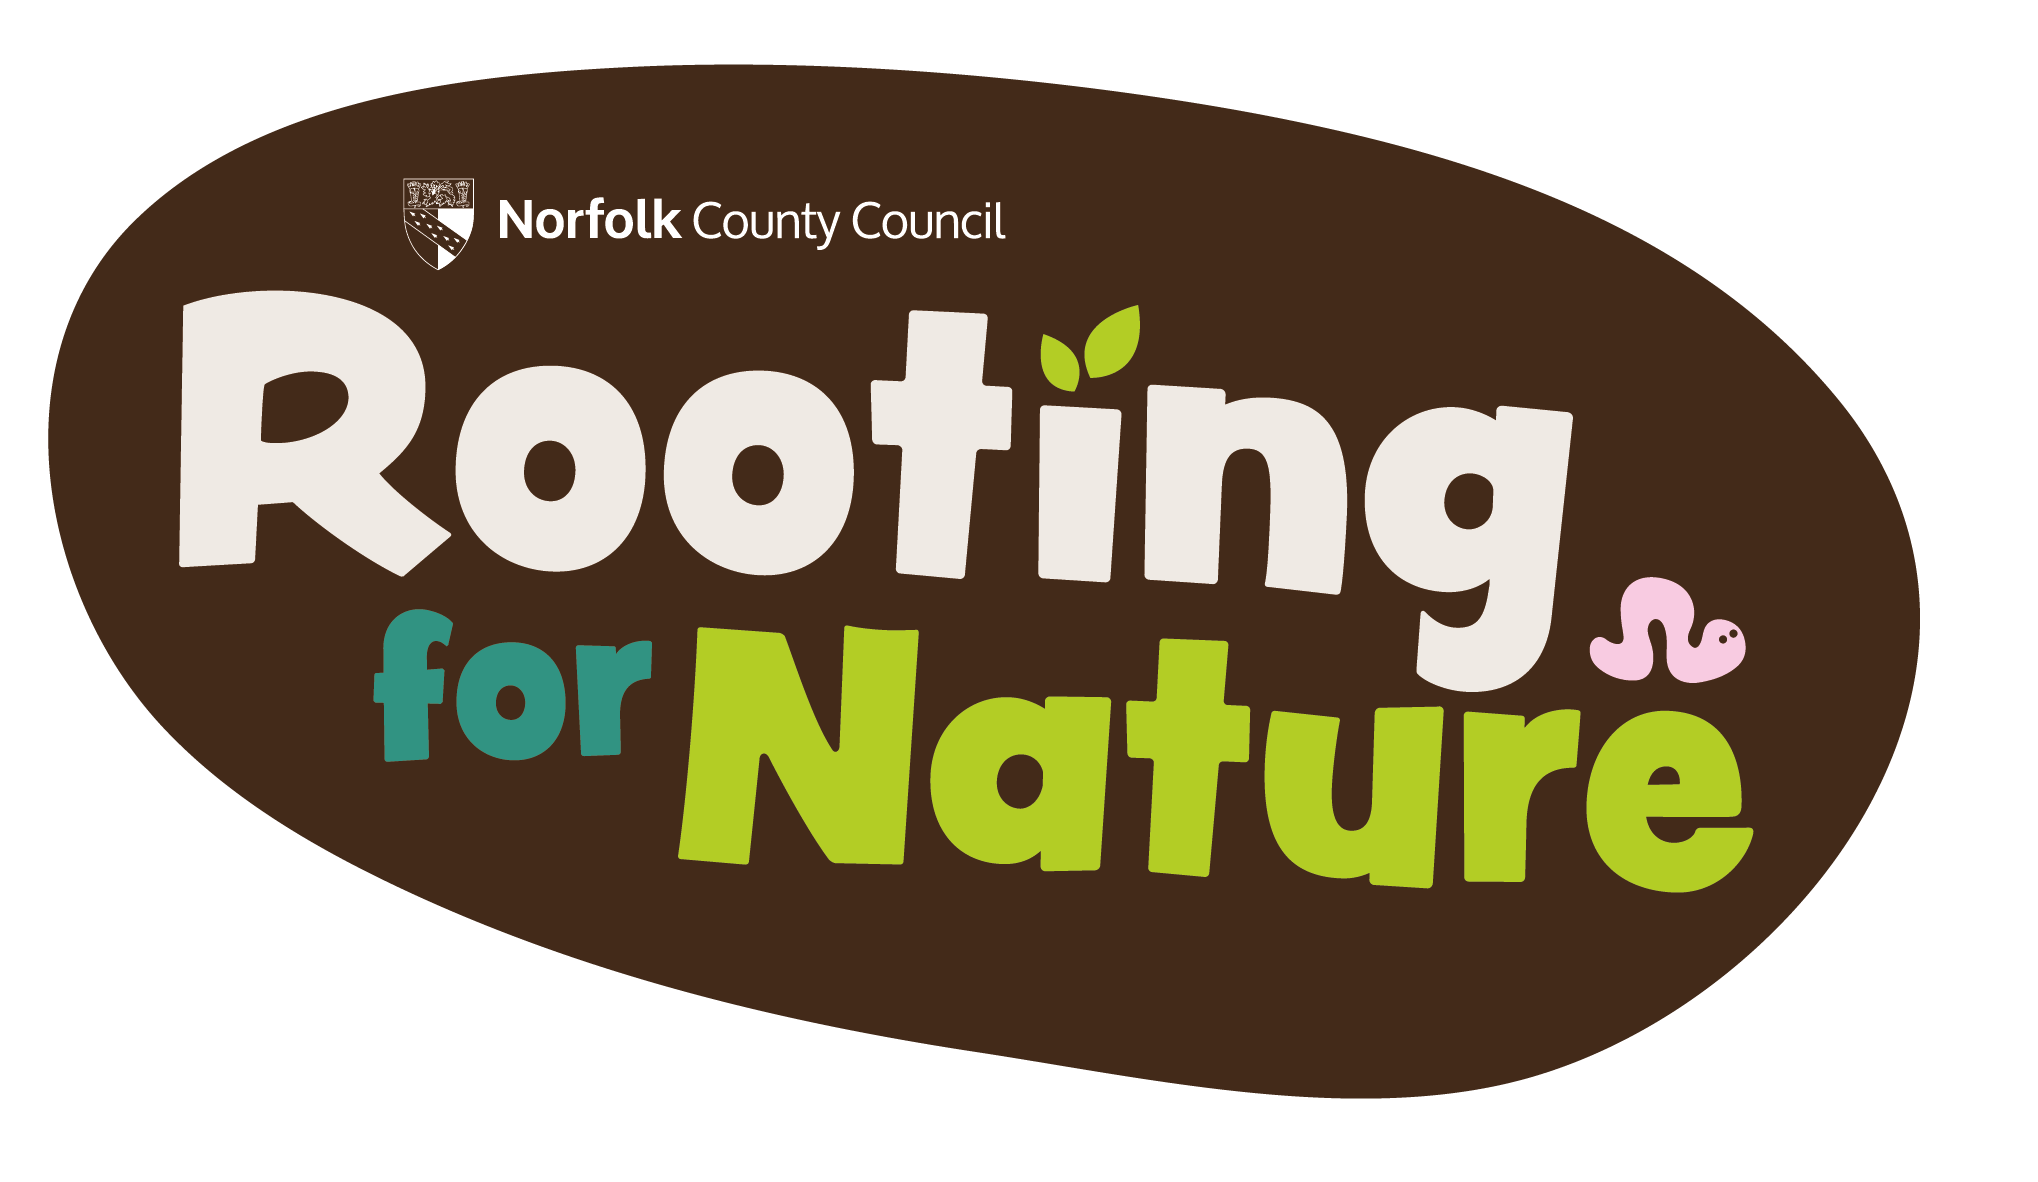 Rooting for Nature Logo, the words rooting for nature in cream, green and blue on a brown background. Image contains a small cartoon worm